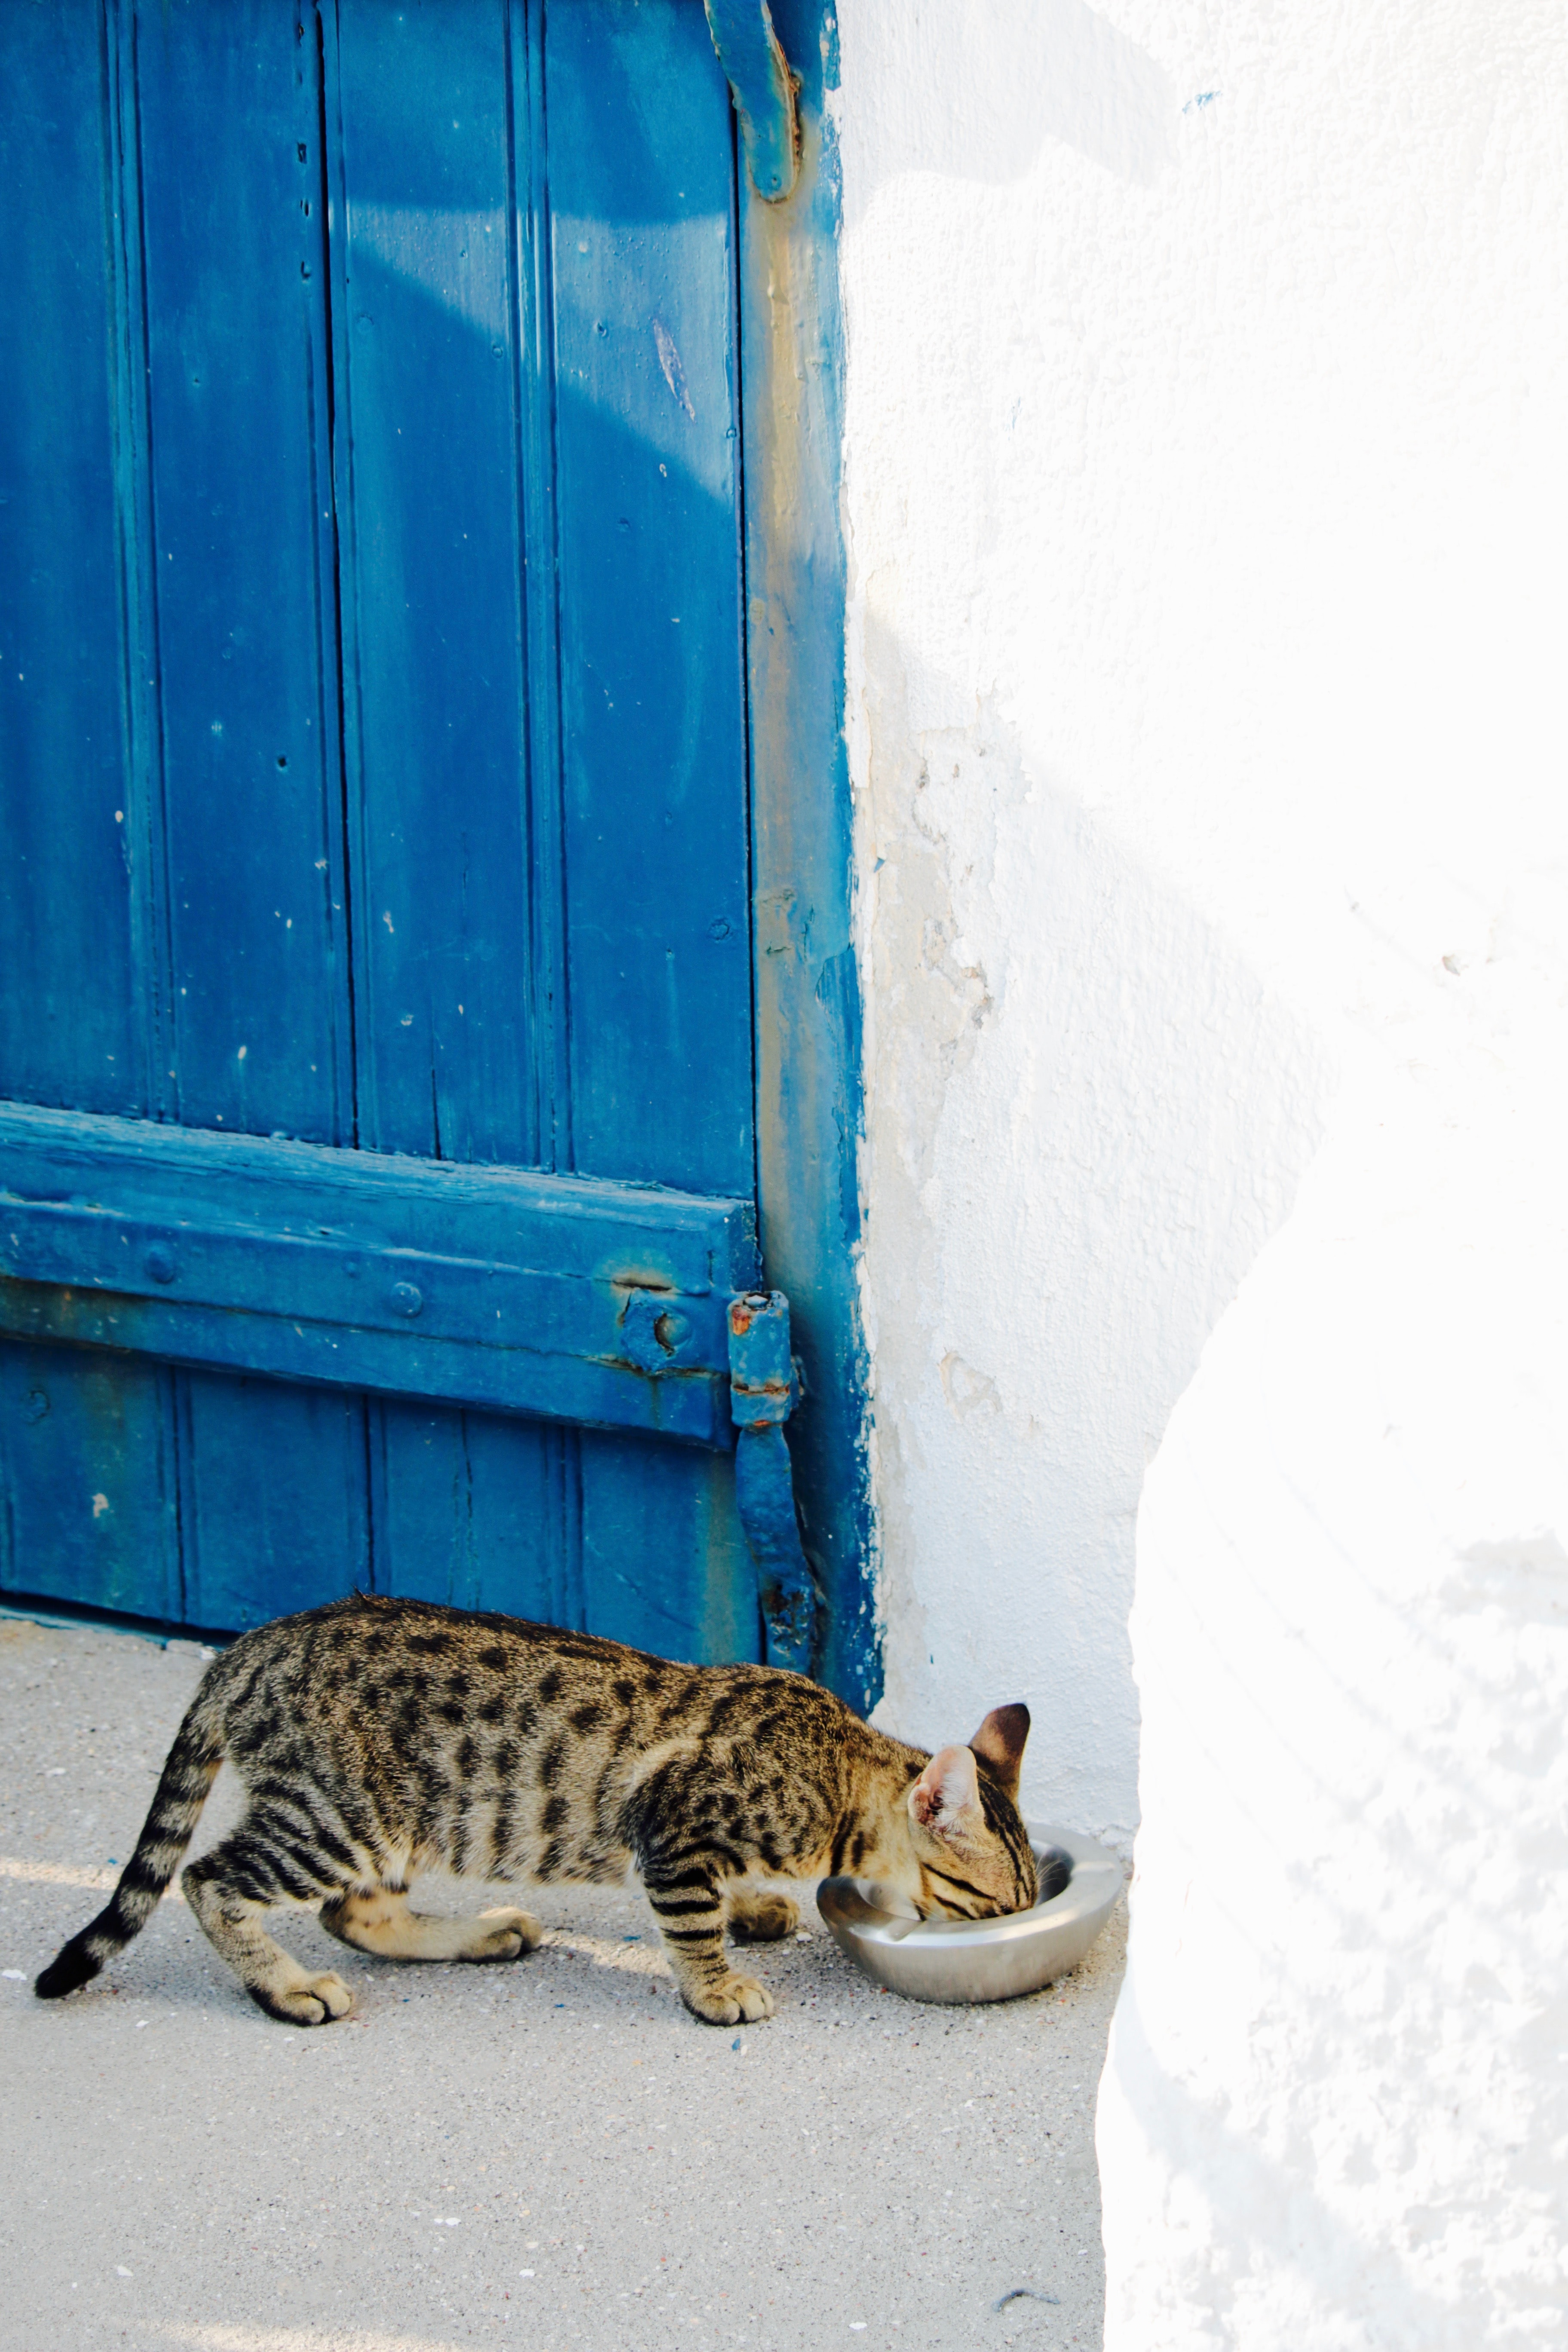 brown tabby cat eating beside wall